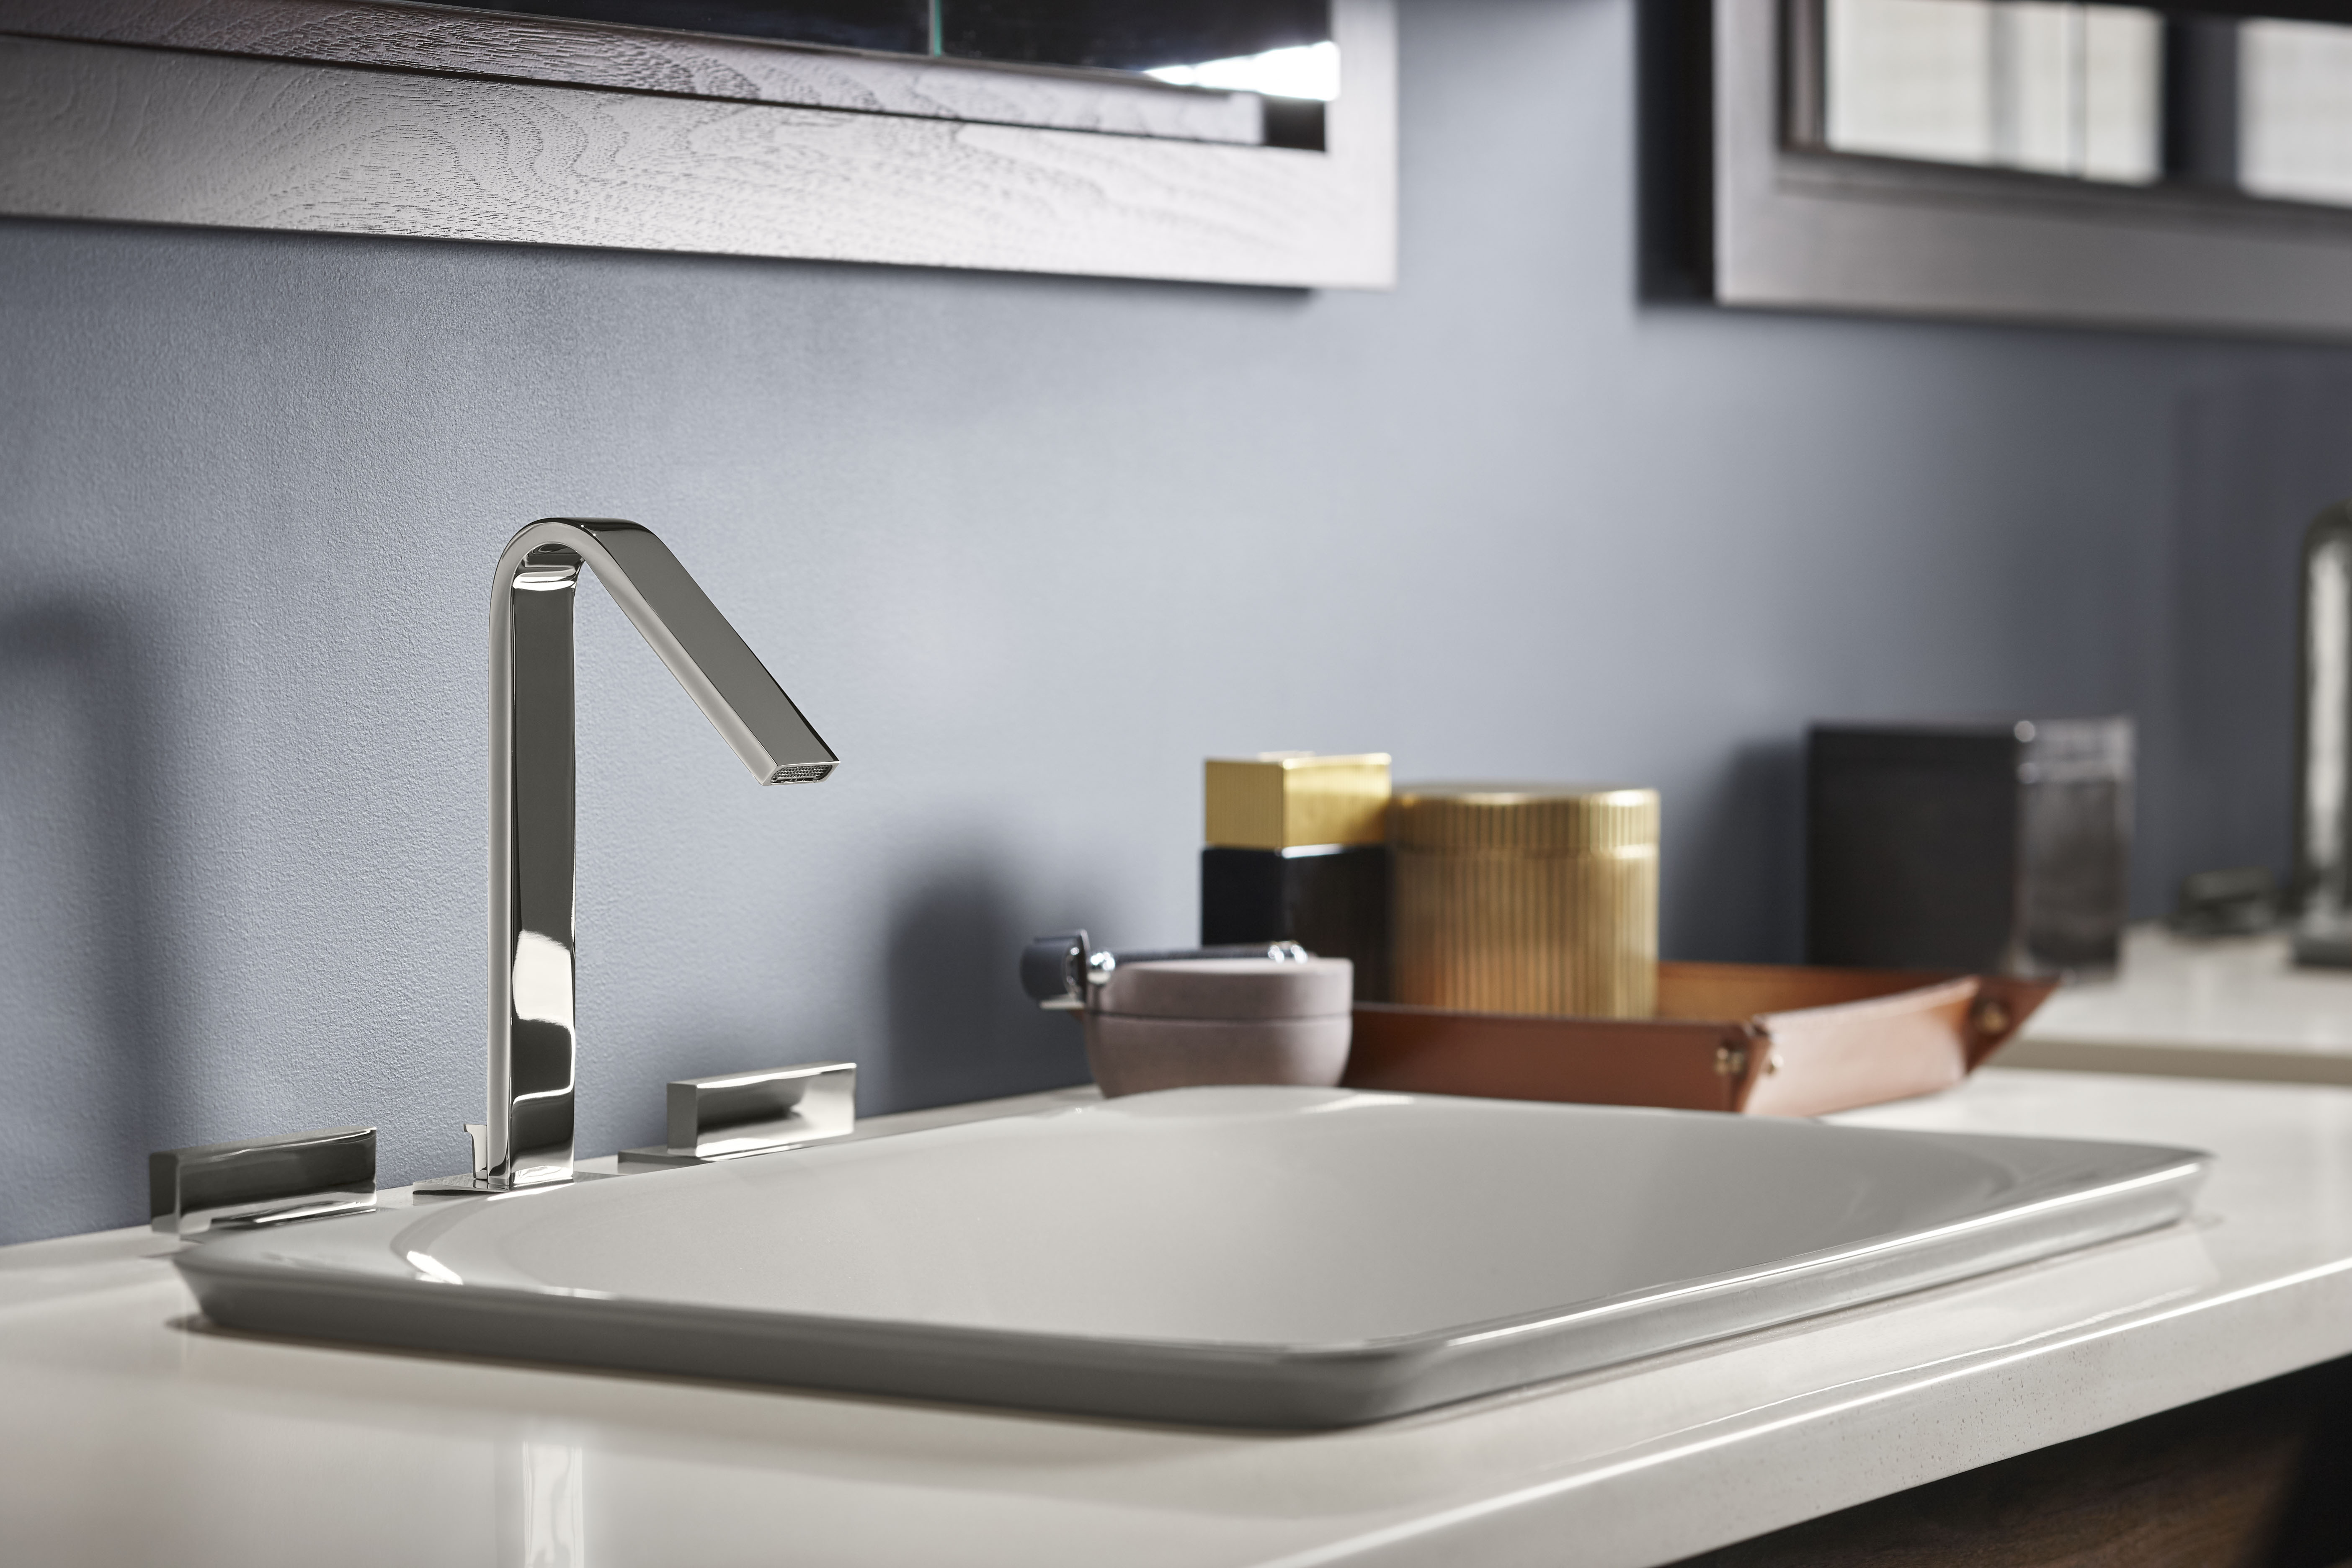 Loure Faucet     Carillon Sink     The Vibrant Polished Nickel finish on this sleek faucet picks up light adding an inviting touch to this crisp, modern environment.